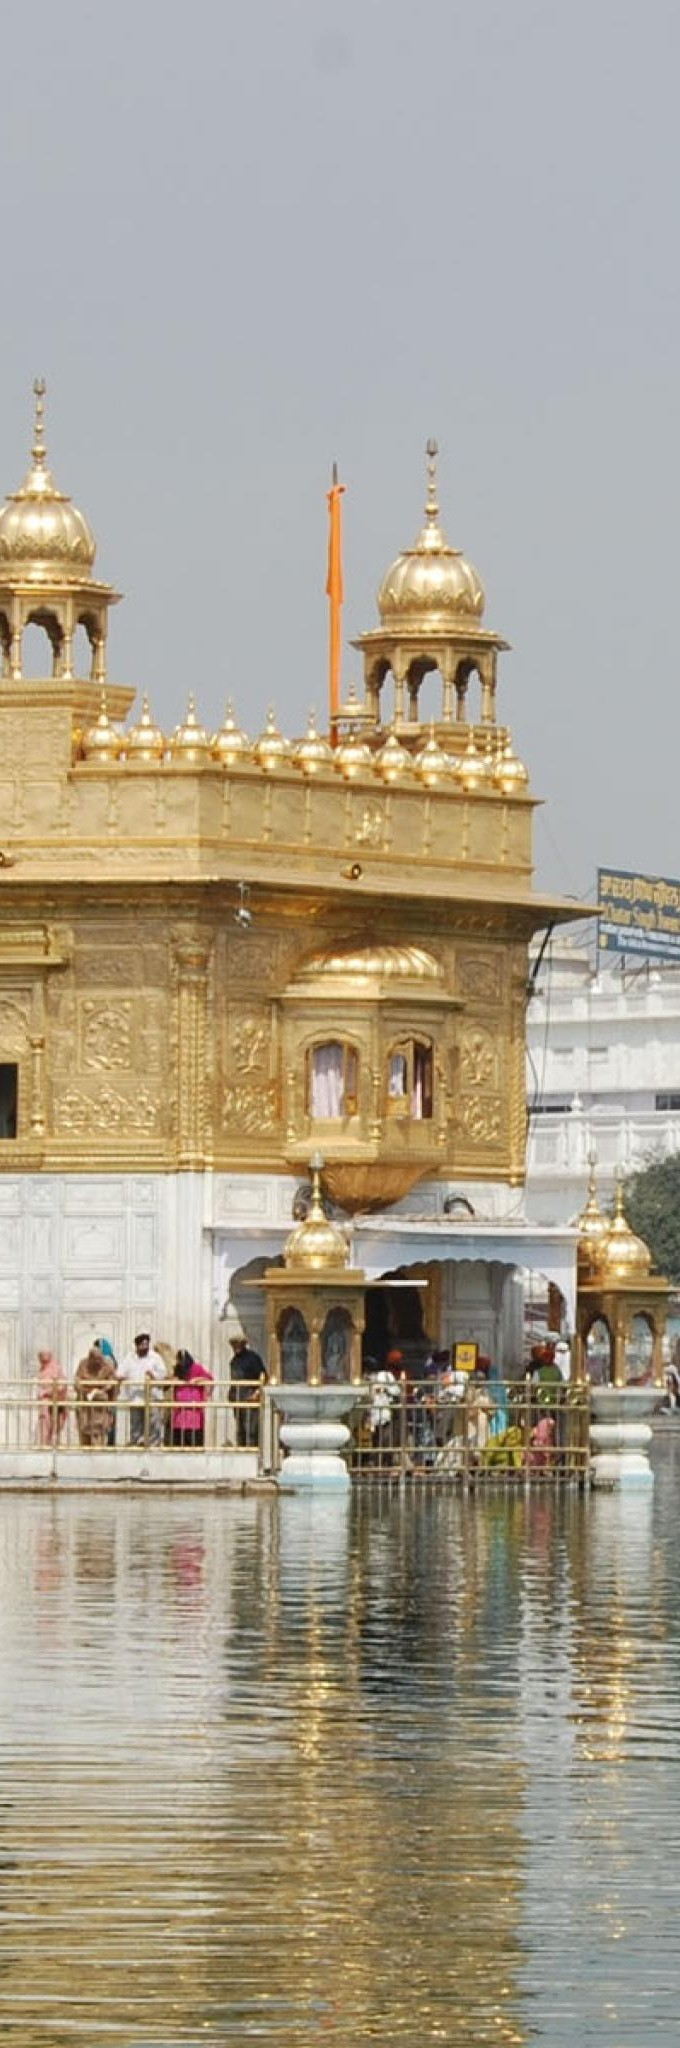 golden-temple-amritsar-india-city-pictures-587603